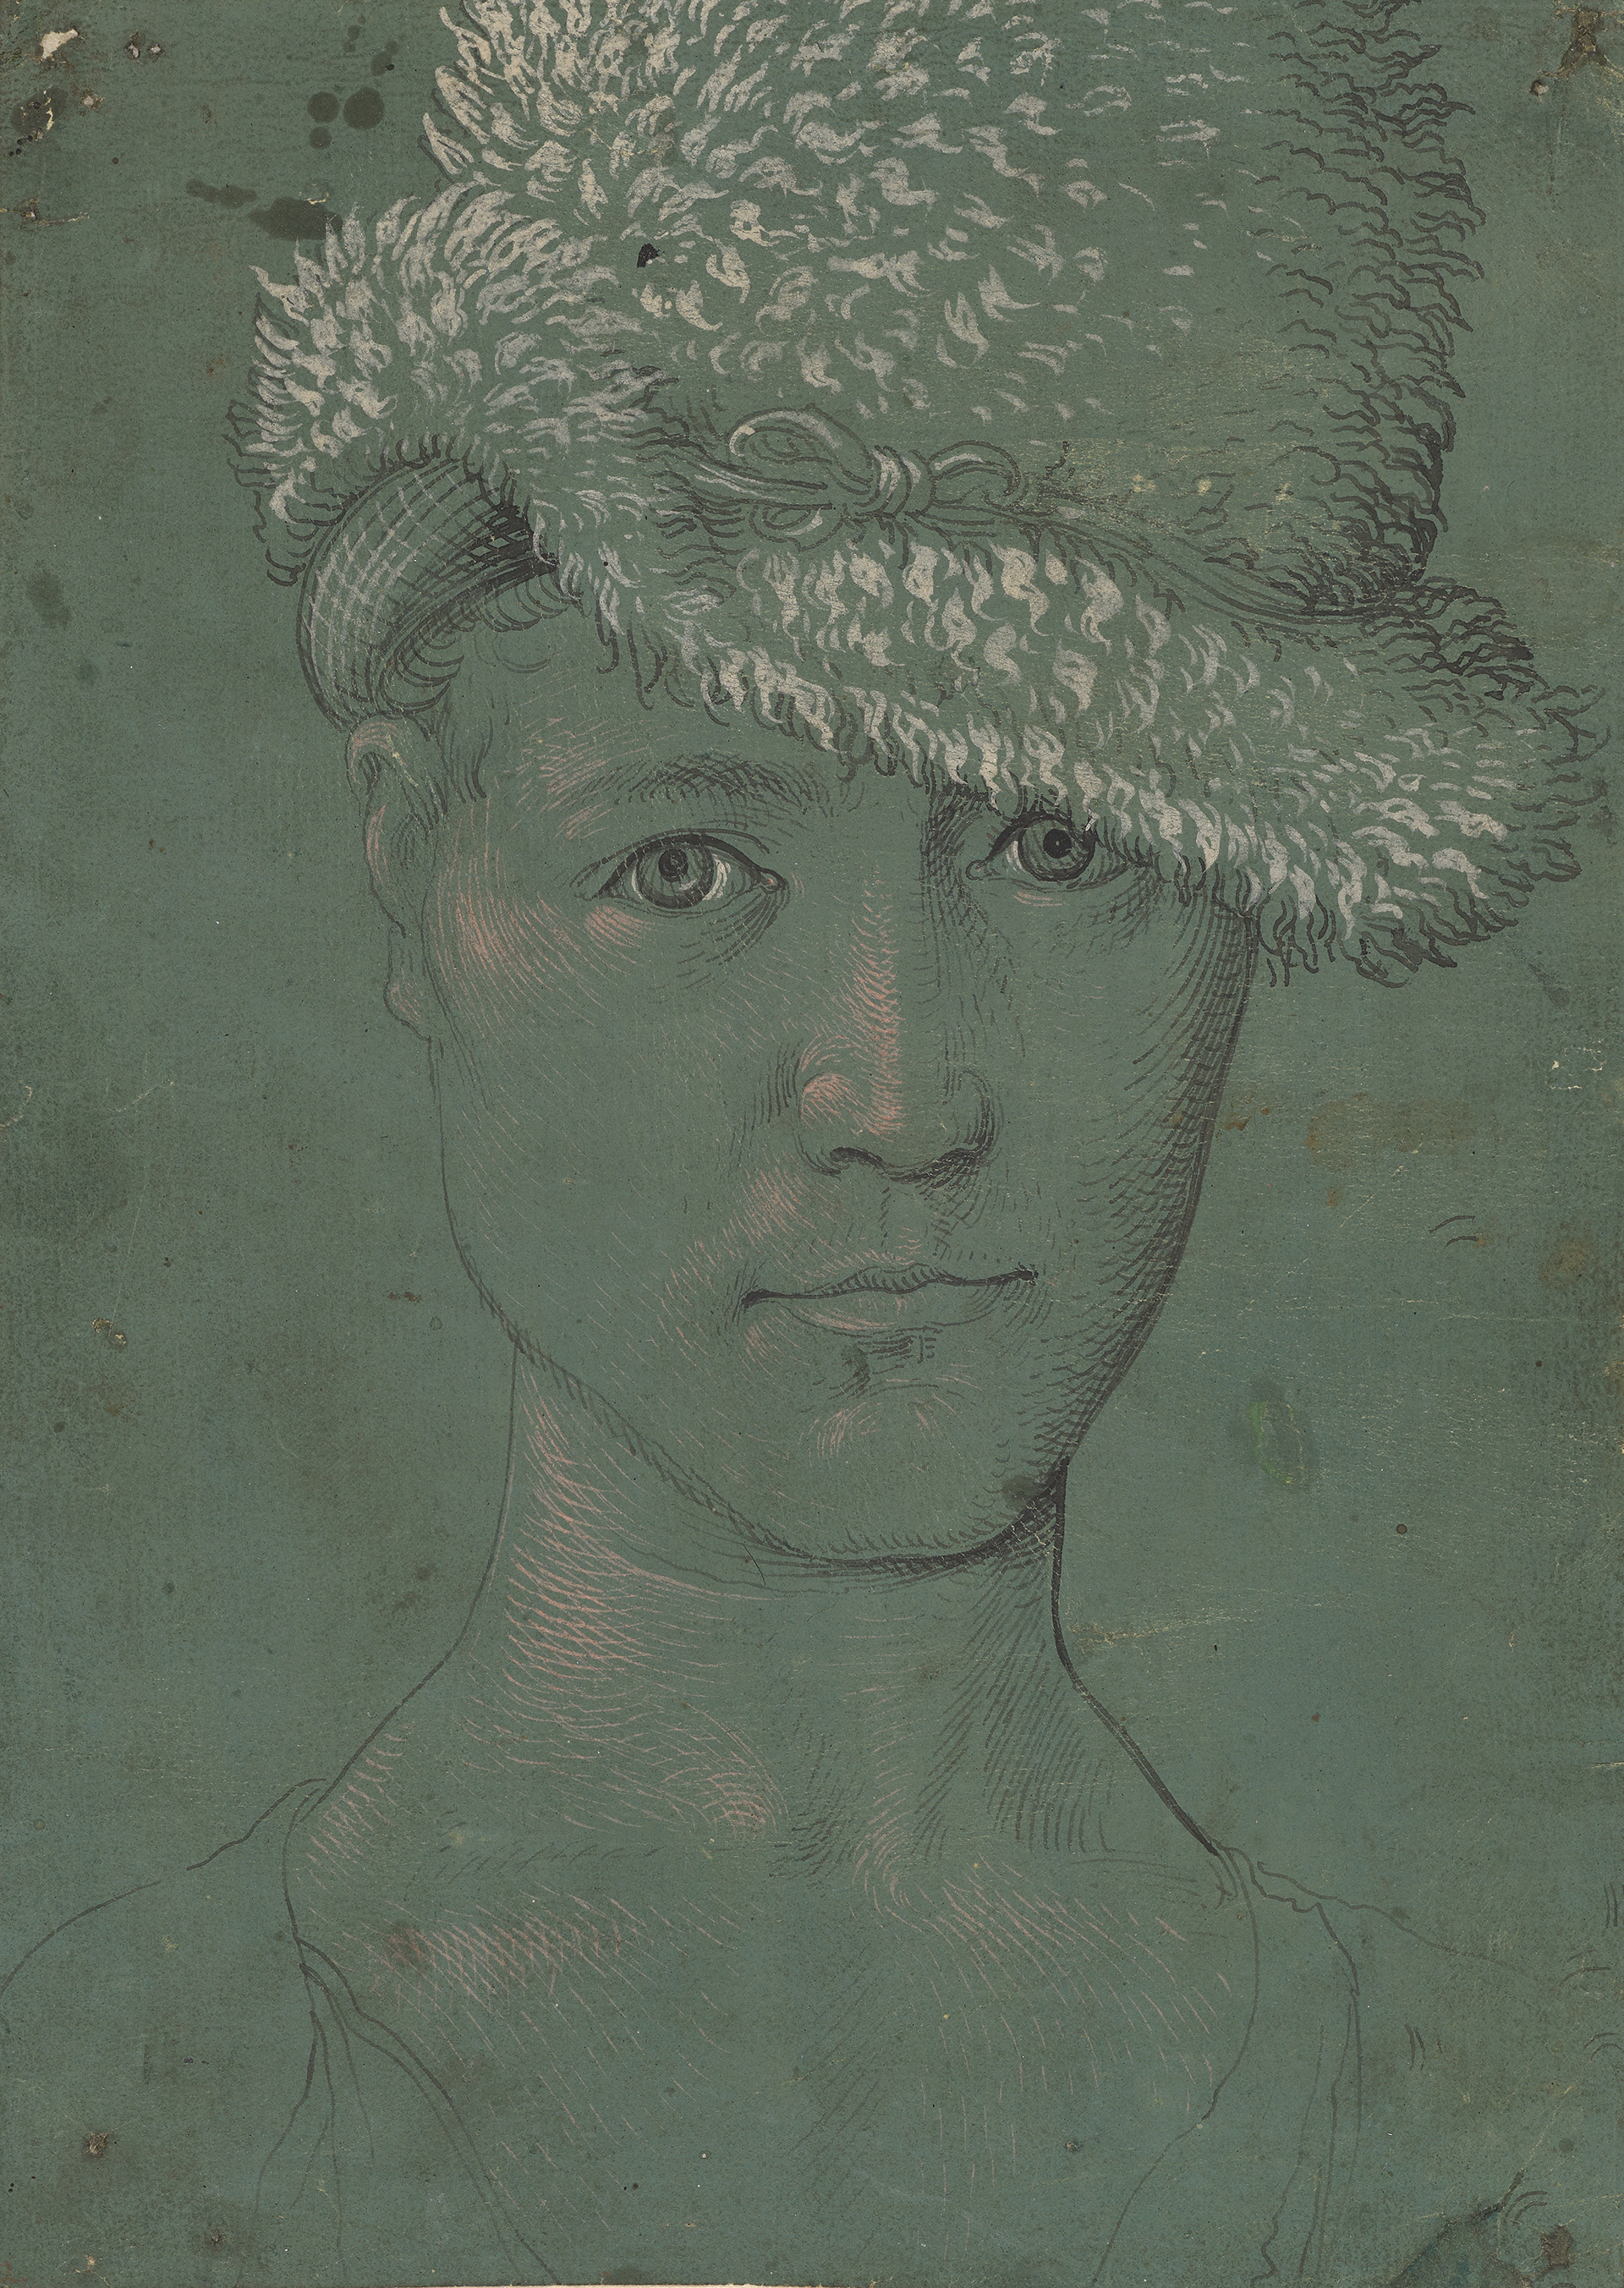 Image of Hans Baldung Grien: Youthful Self-Portrait, around 1502, lent by Kunstmuseum Basel.